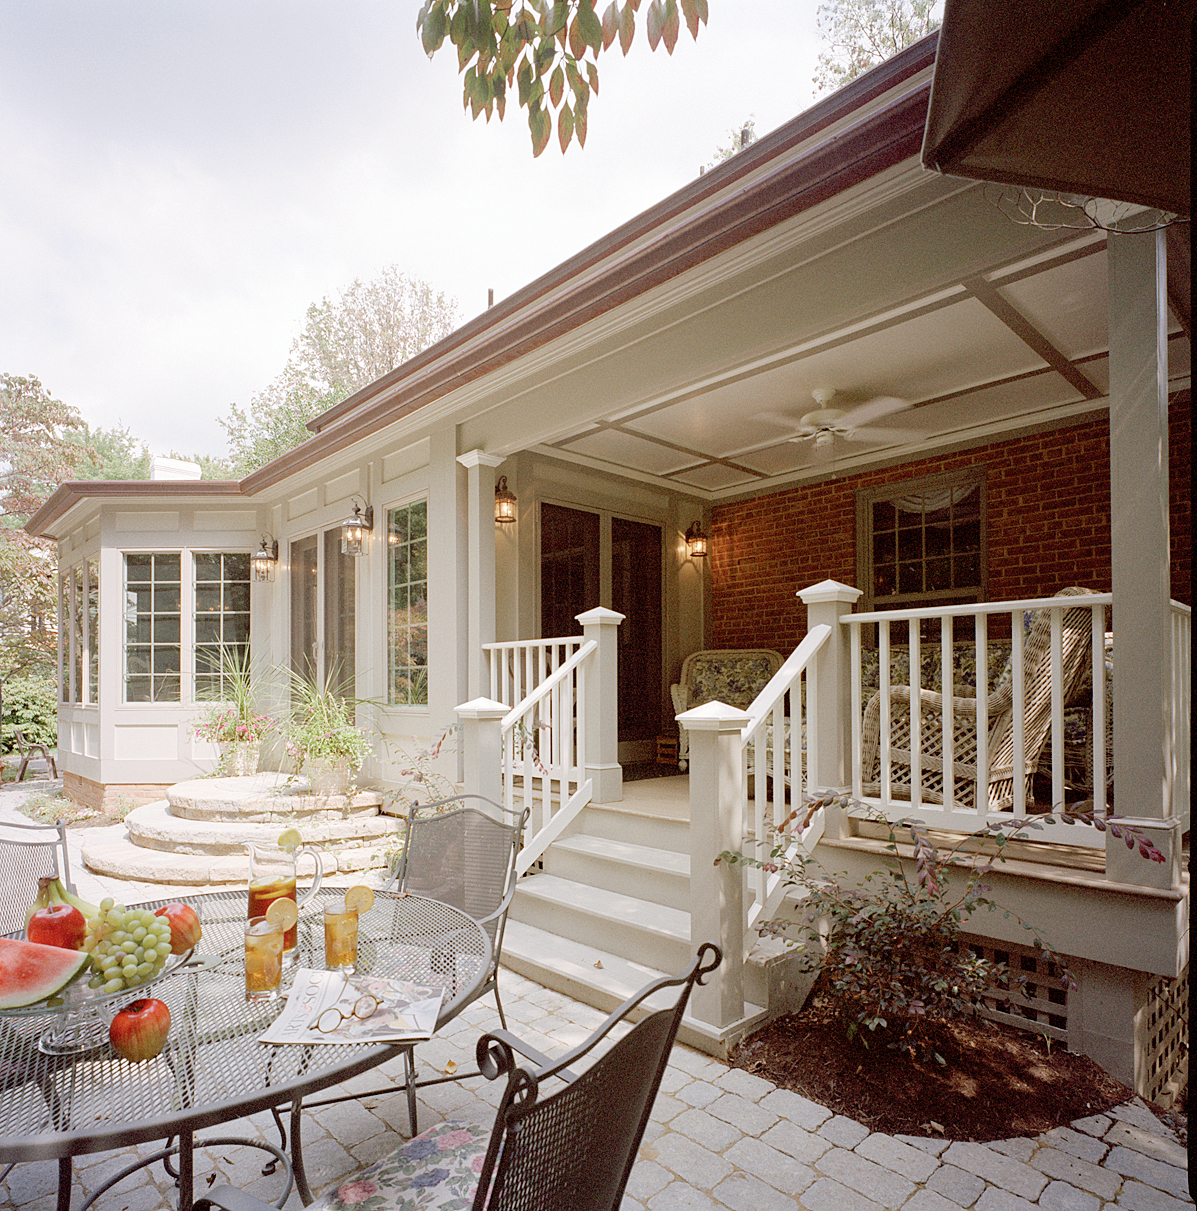 Patio Contractors Charlotte Nc: Case Design/Remodeling Of Charlotte